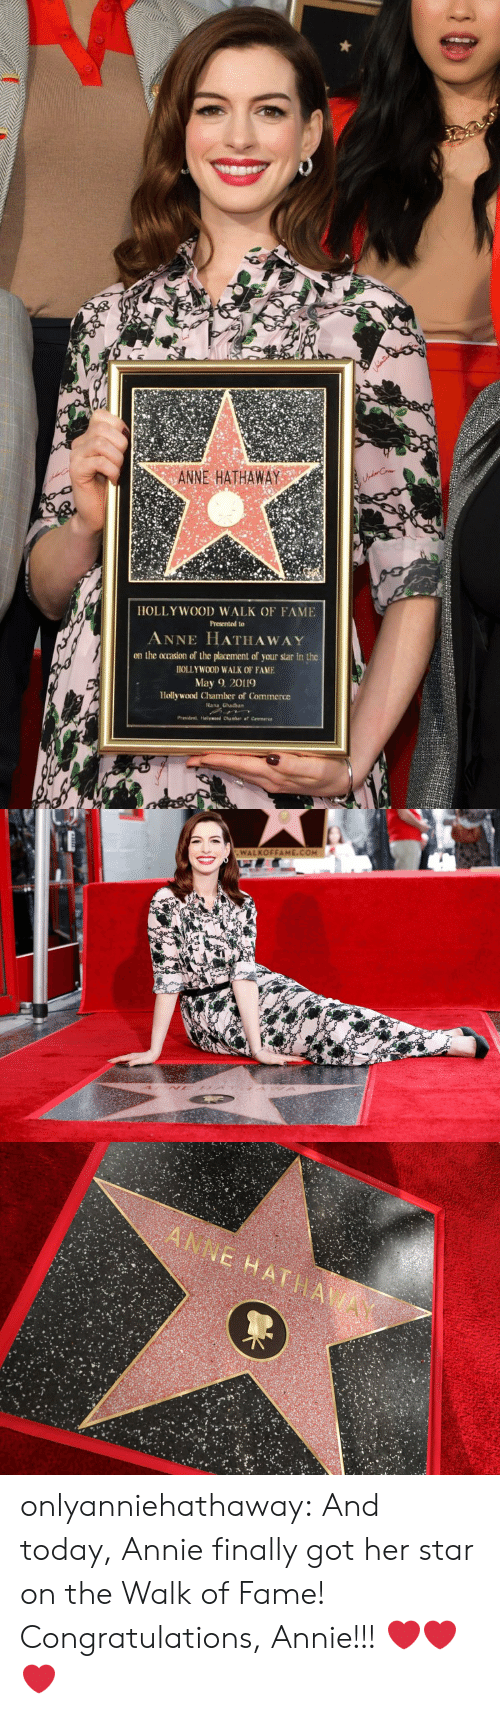 Annie: ANNE HATHAWAY  HOLLY WOOD WALK OF FAME  Presented to  ANNE HATHAWAY  on the ocrasion of the placement of your star in the  HOLLYWOOD WALK OF FAME  May 2019  Hollywood Chamber of Commerce  ana Ghadban   WALKOFFAME.COM onlyanniehathaway:  And today, Annie finally got her star on the Walk of Fame! Congratulations, Annie!!!  ❤️❤️❤️